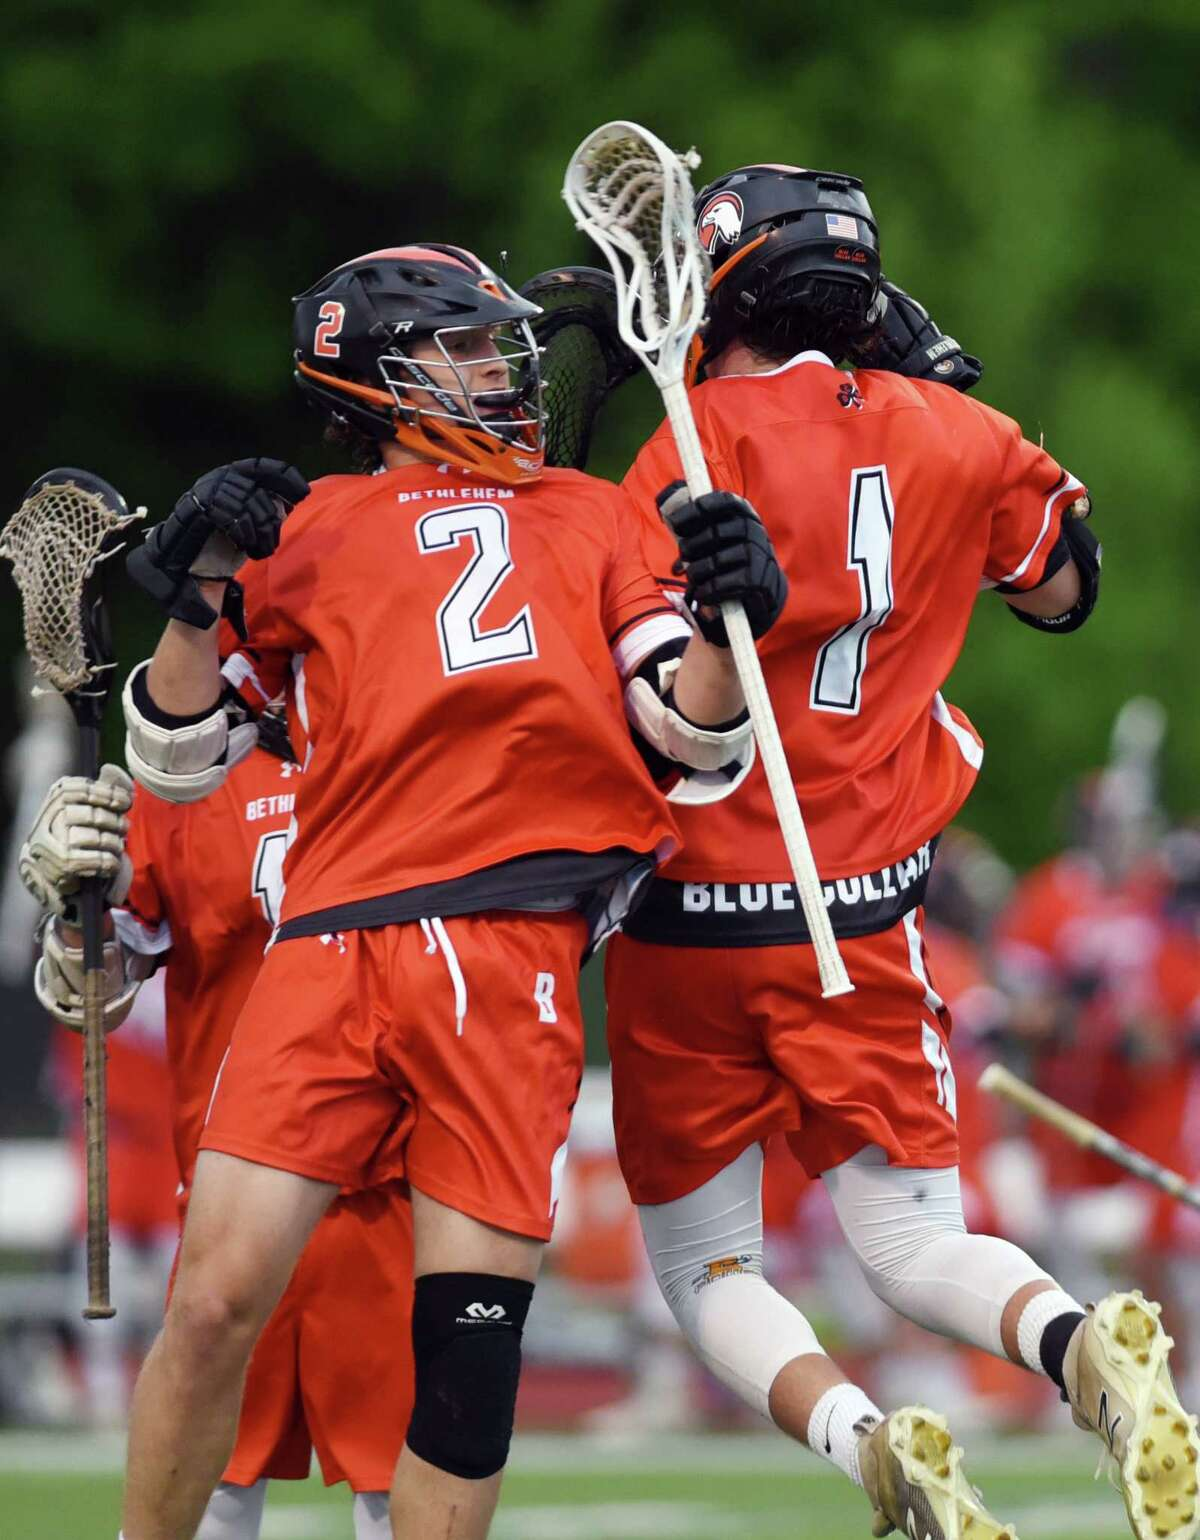 Bethlehem attack Liam Ferris celebrates scoring a goal during the Class A boys' lacrosse final on Friday, May 24, 2019 at Columbia High School in East Greenbush, NY. (Phoebe Sheehan/Times Union)